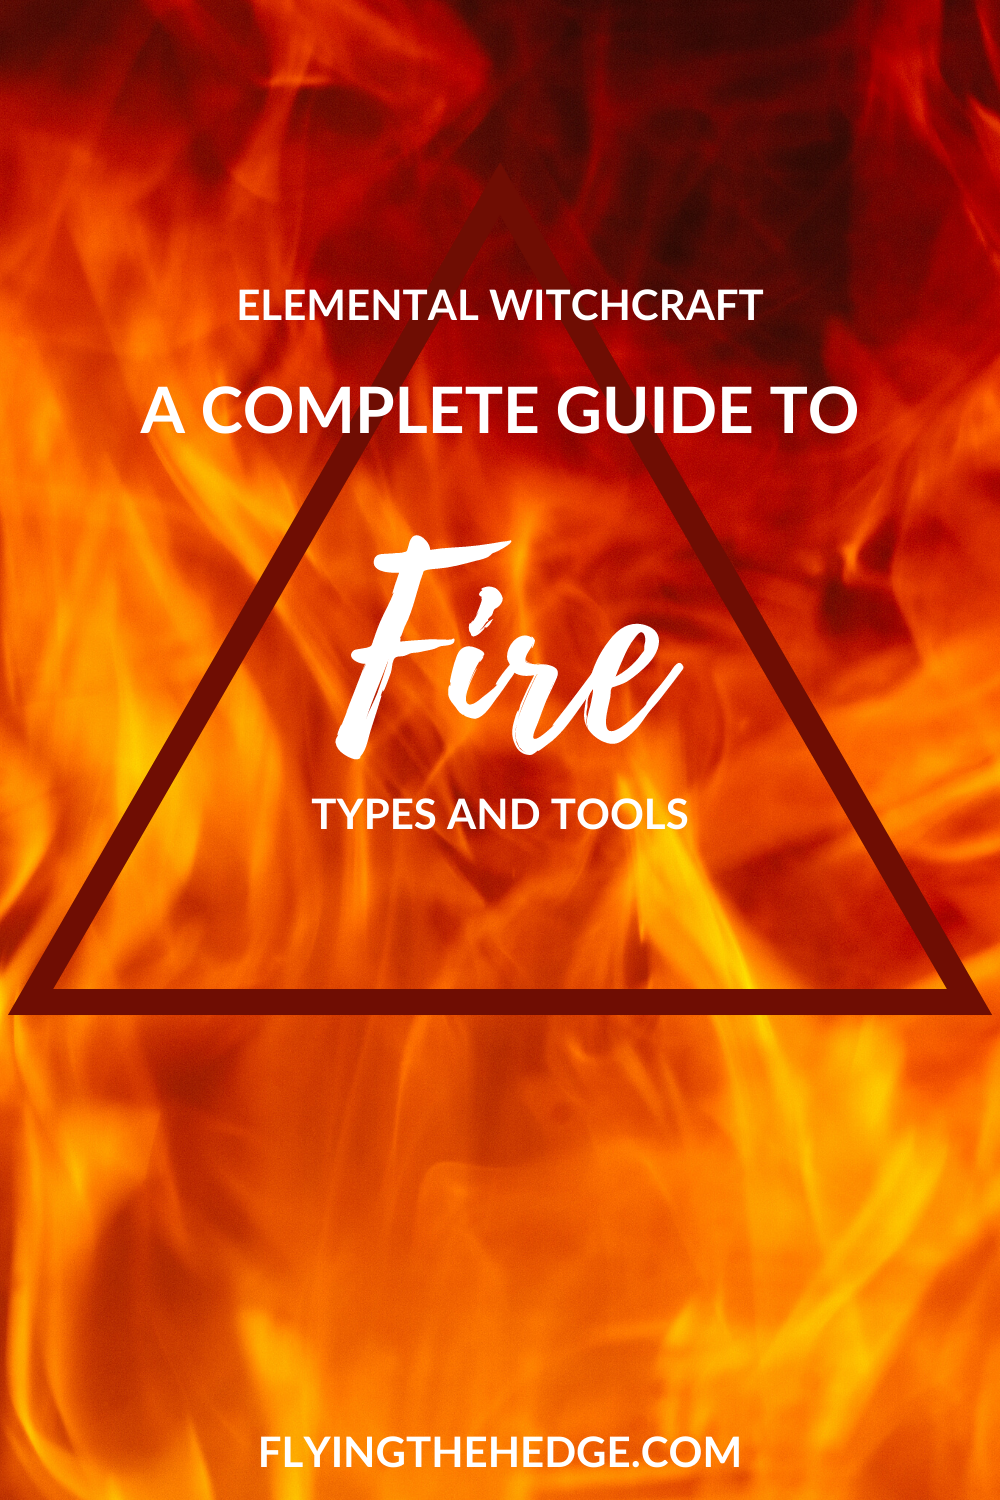 Elemental magic, fire magic, tools of fire, types of fire, fire witchcraft, fire witch, witchcraft, elements, fire